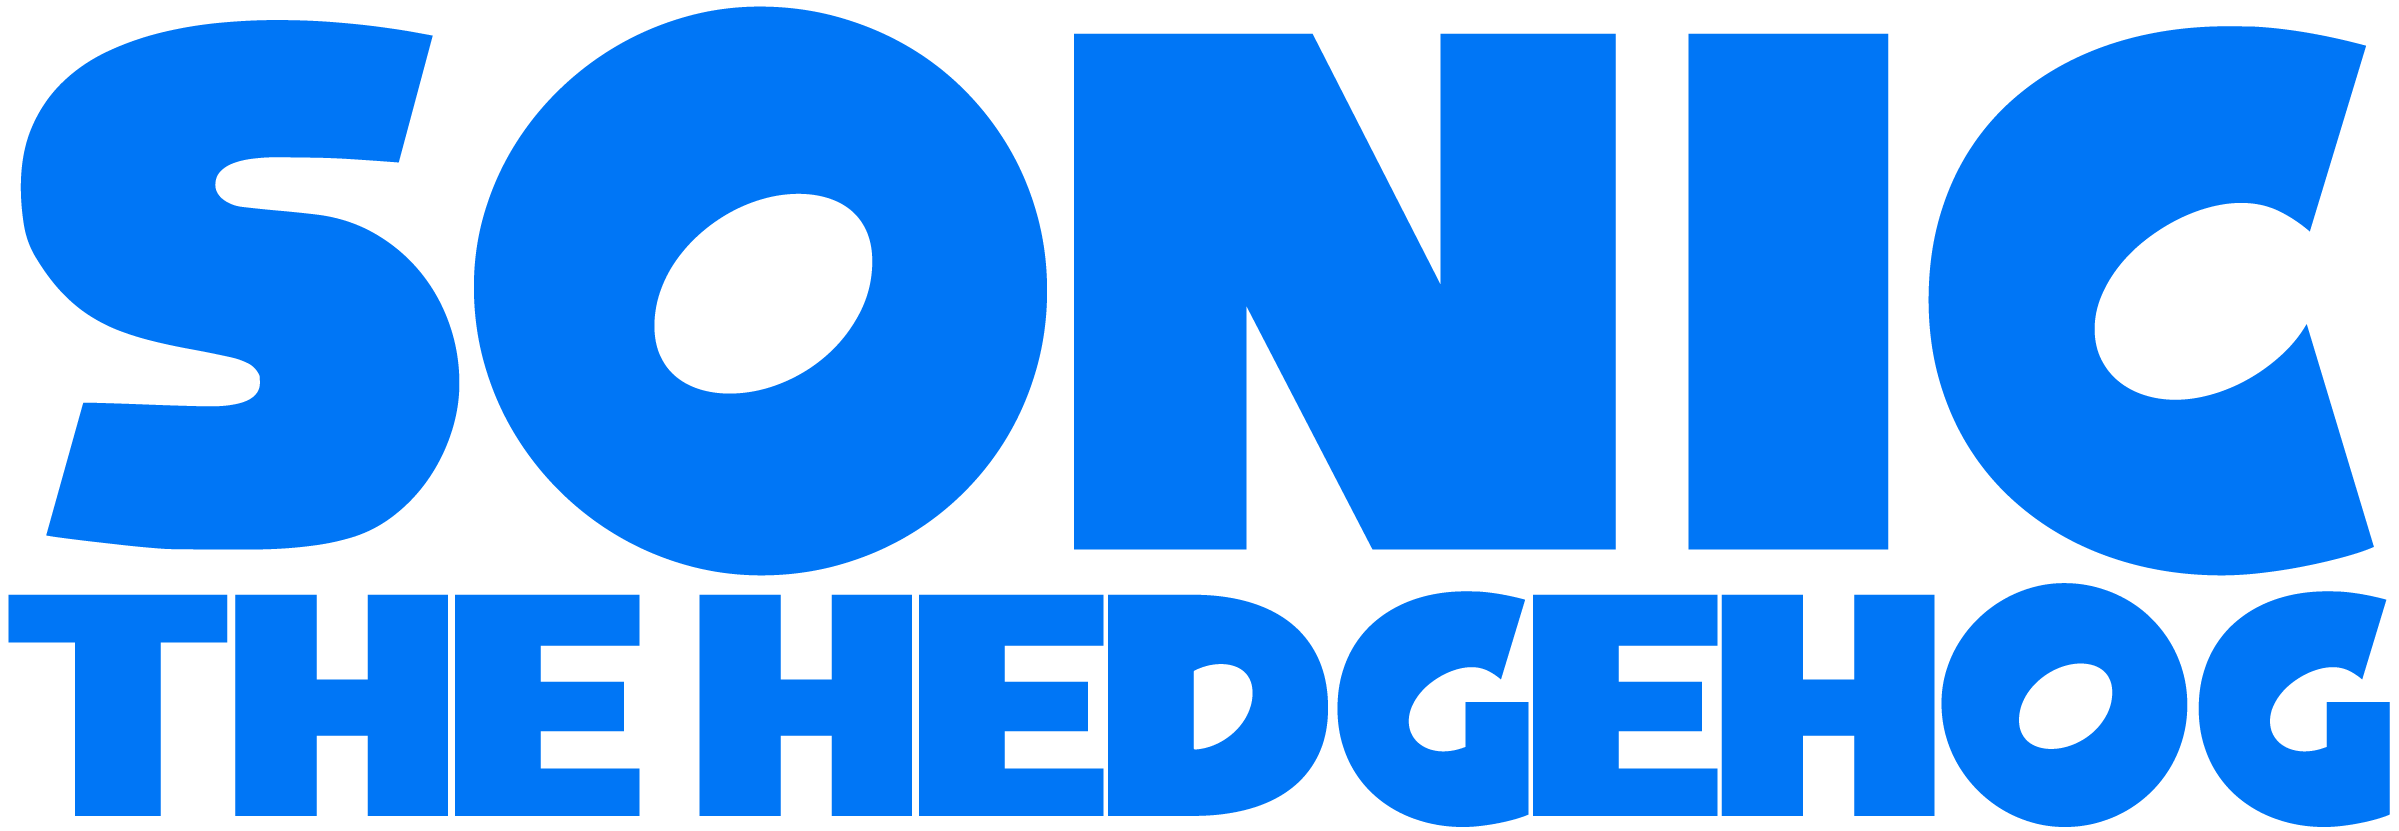 Sonic logo png. File wikimedia commons filesonic